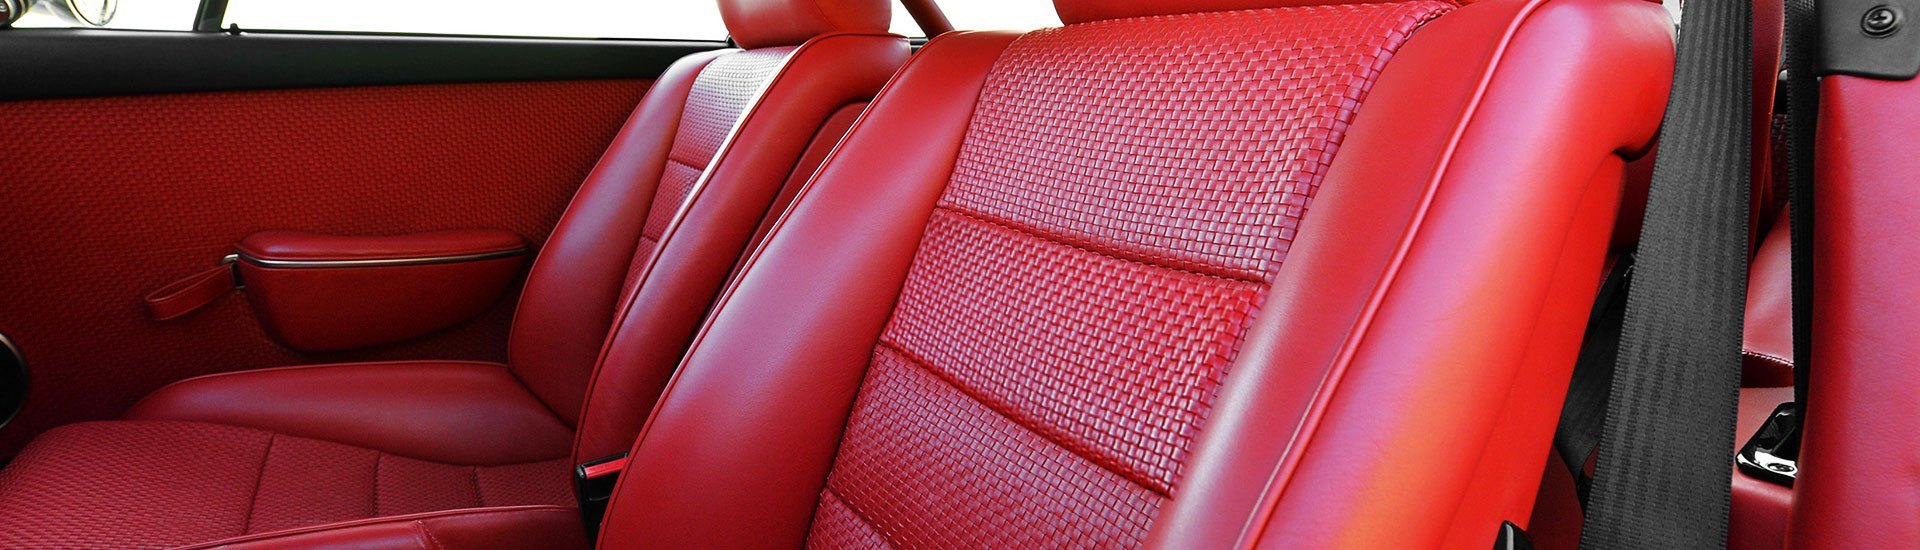 Classic Car Seats: Finish Your Interior Restoration In Style